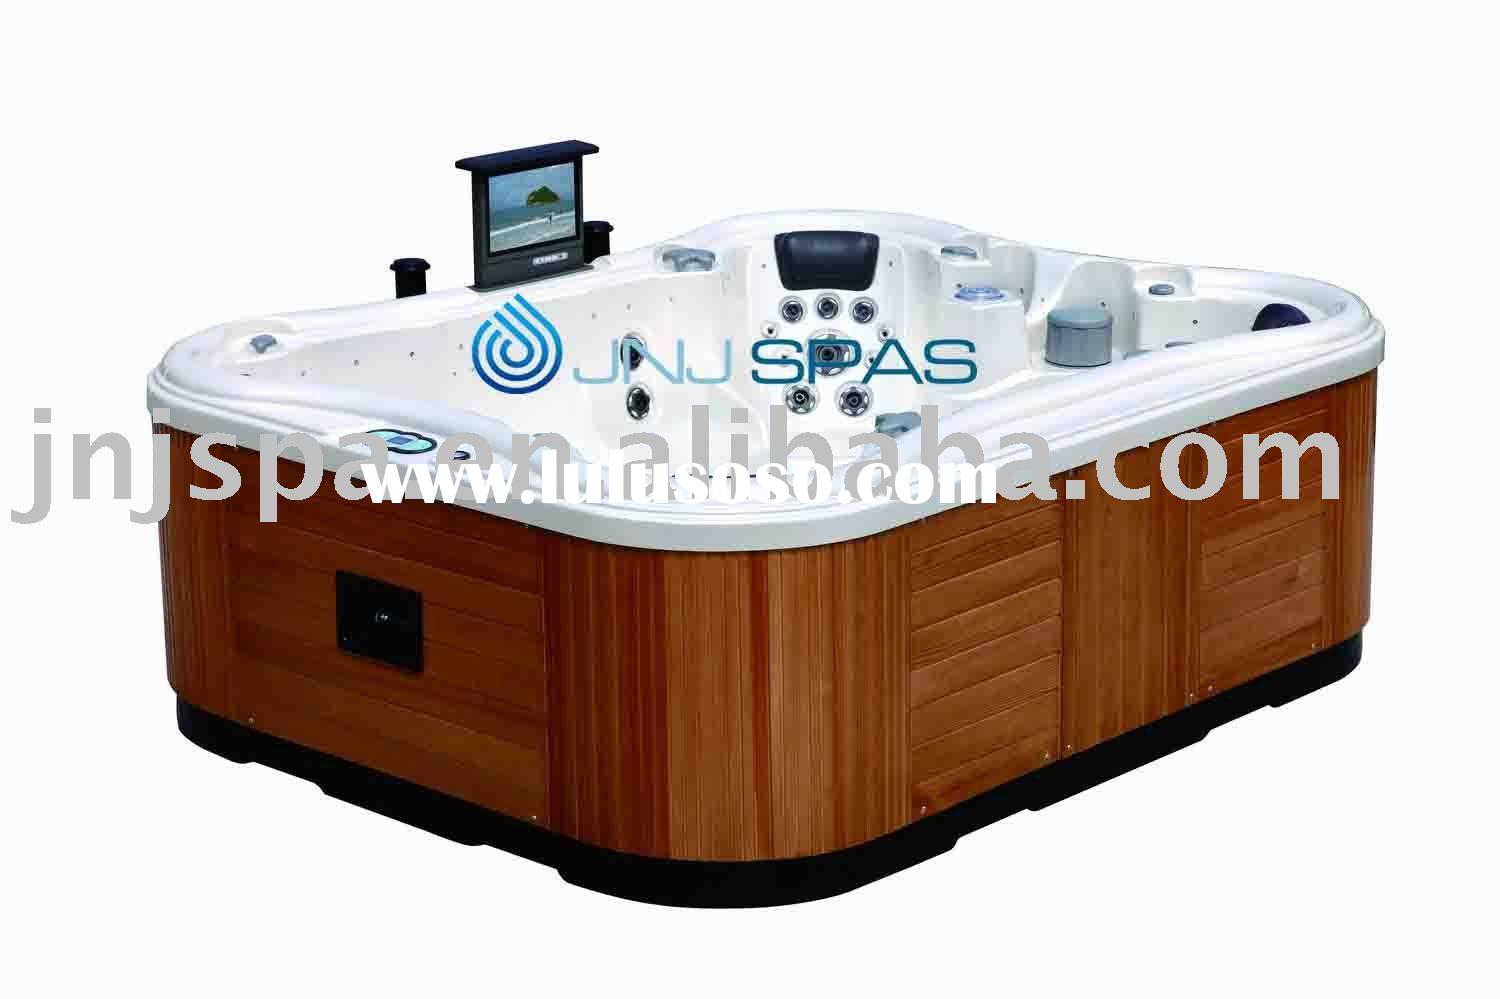 portable whirlpool/spa bathtub with Pop-up LCD TV